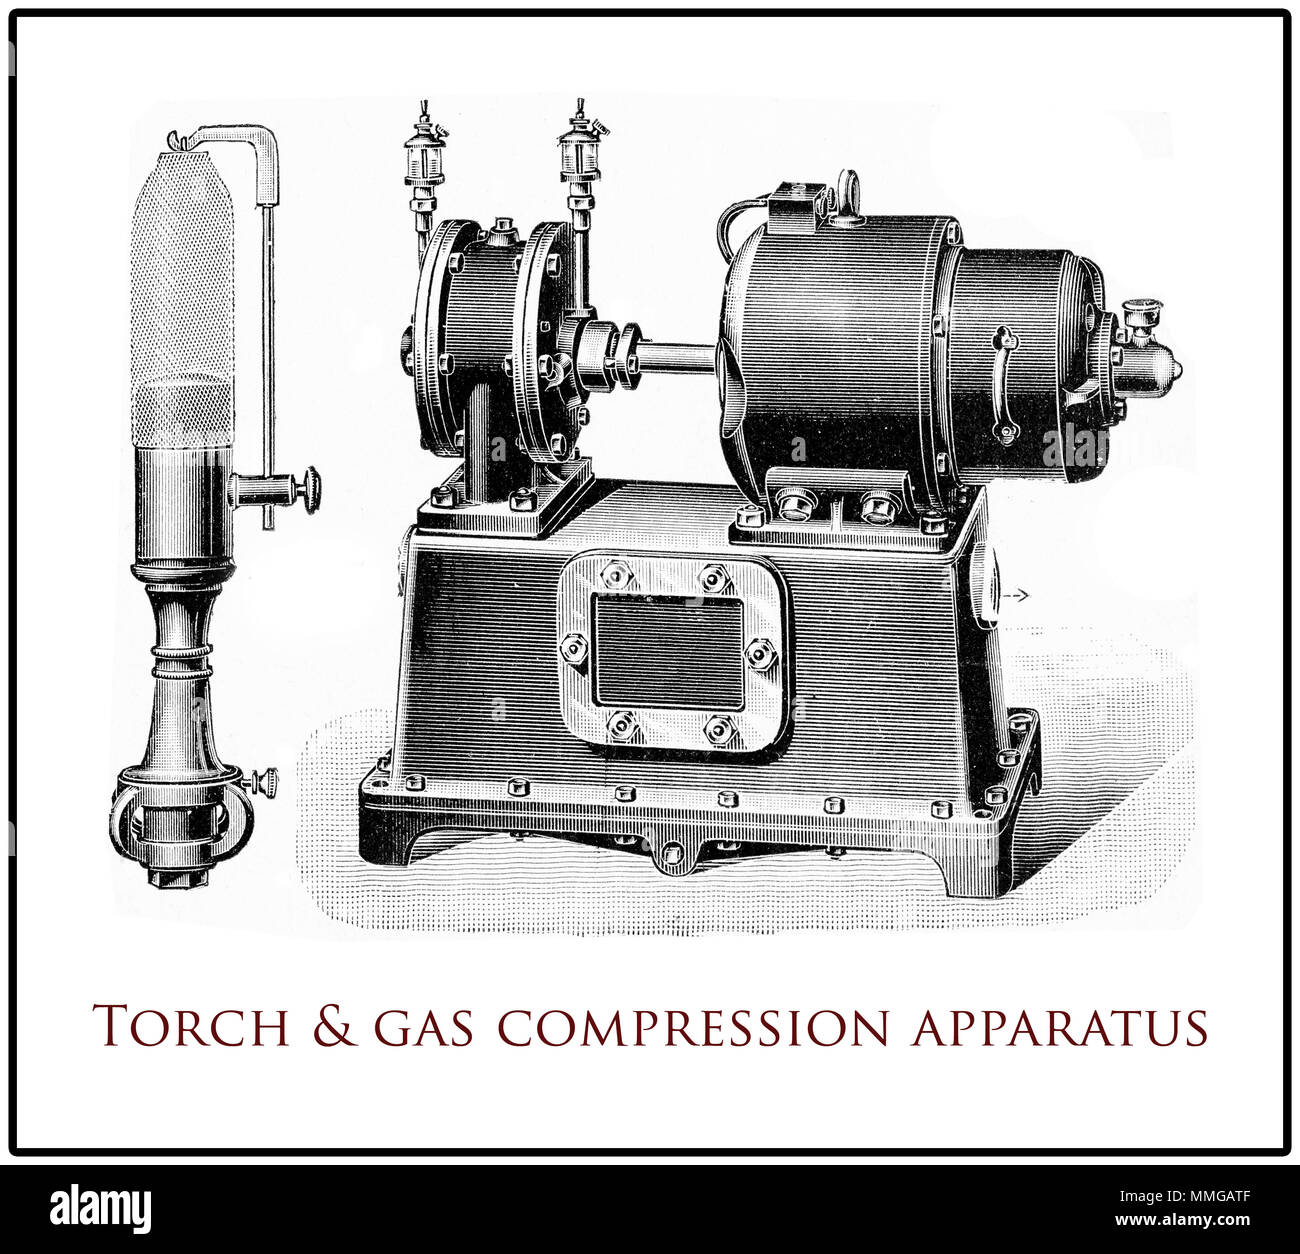 Vintage arc torch with its gas compression equipment, XIX century engraving - Stock Image